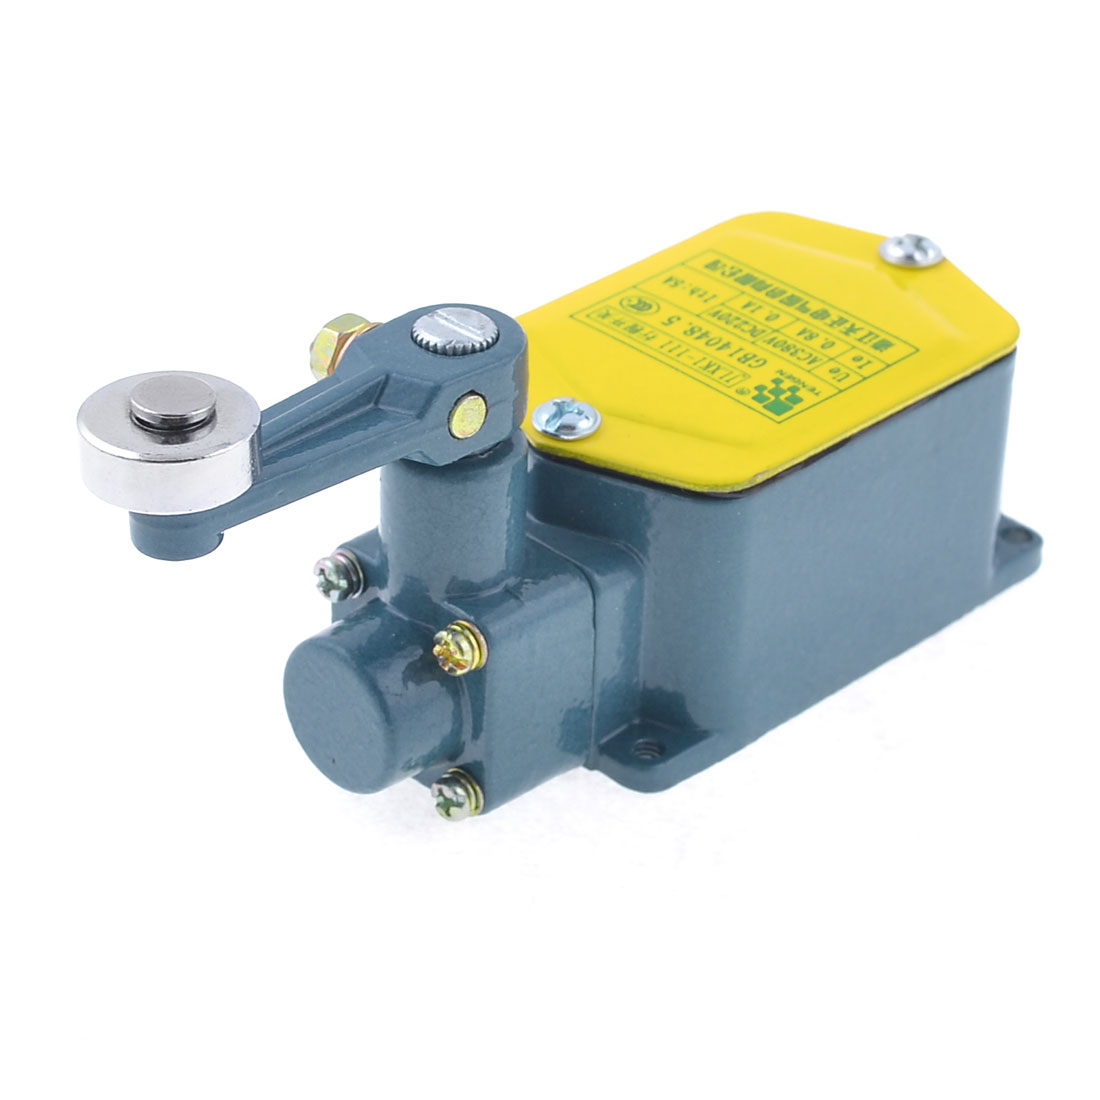 Teal Blue Roller Lever Actuator Enclosed Compact Limit Switch JLXK1-111